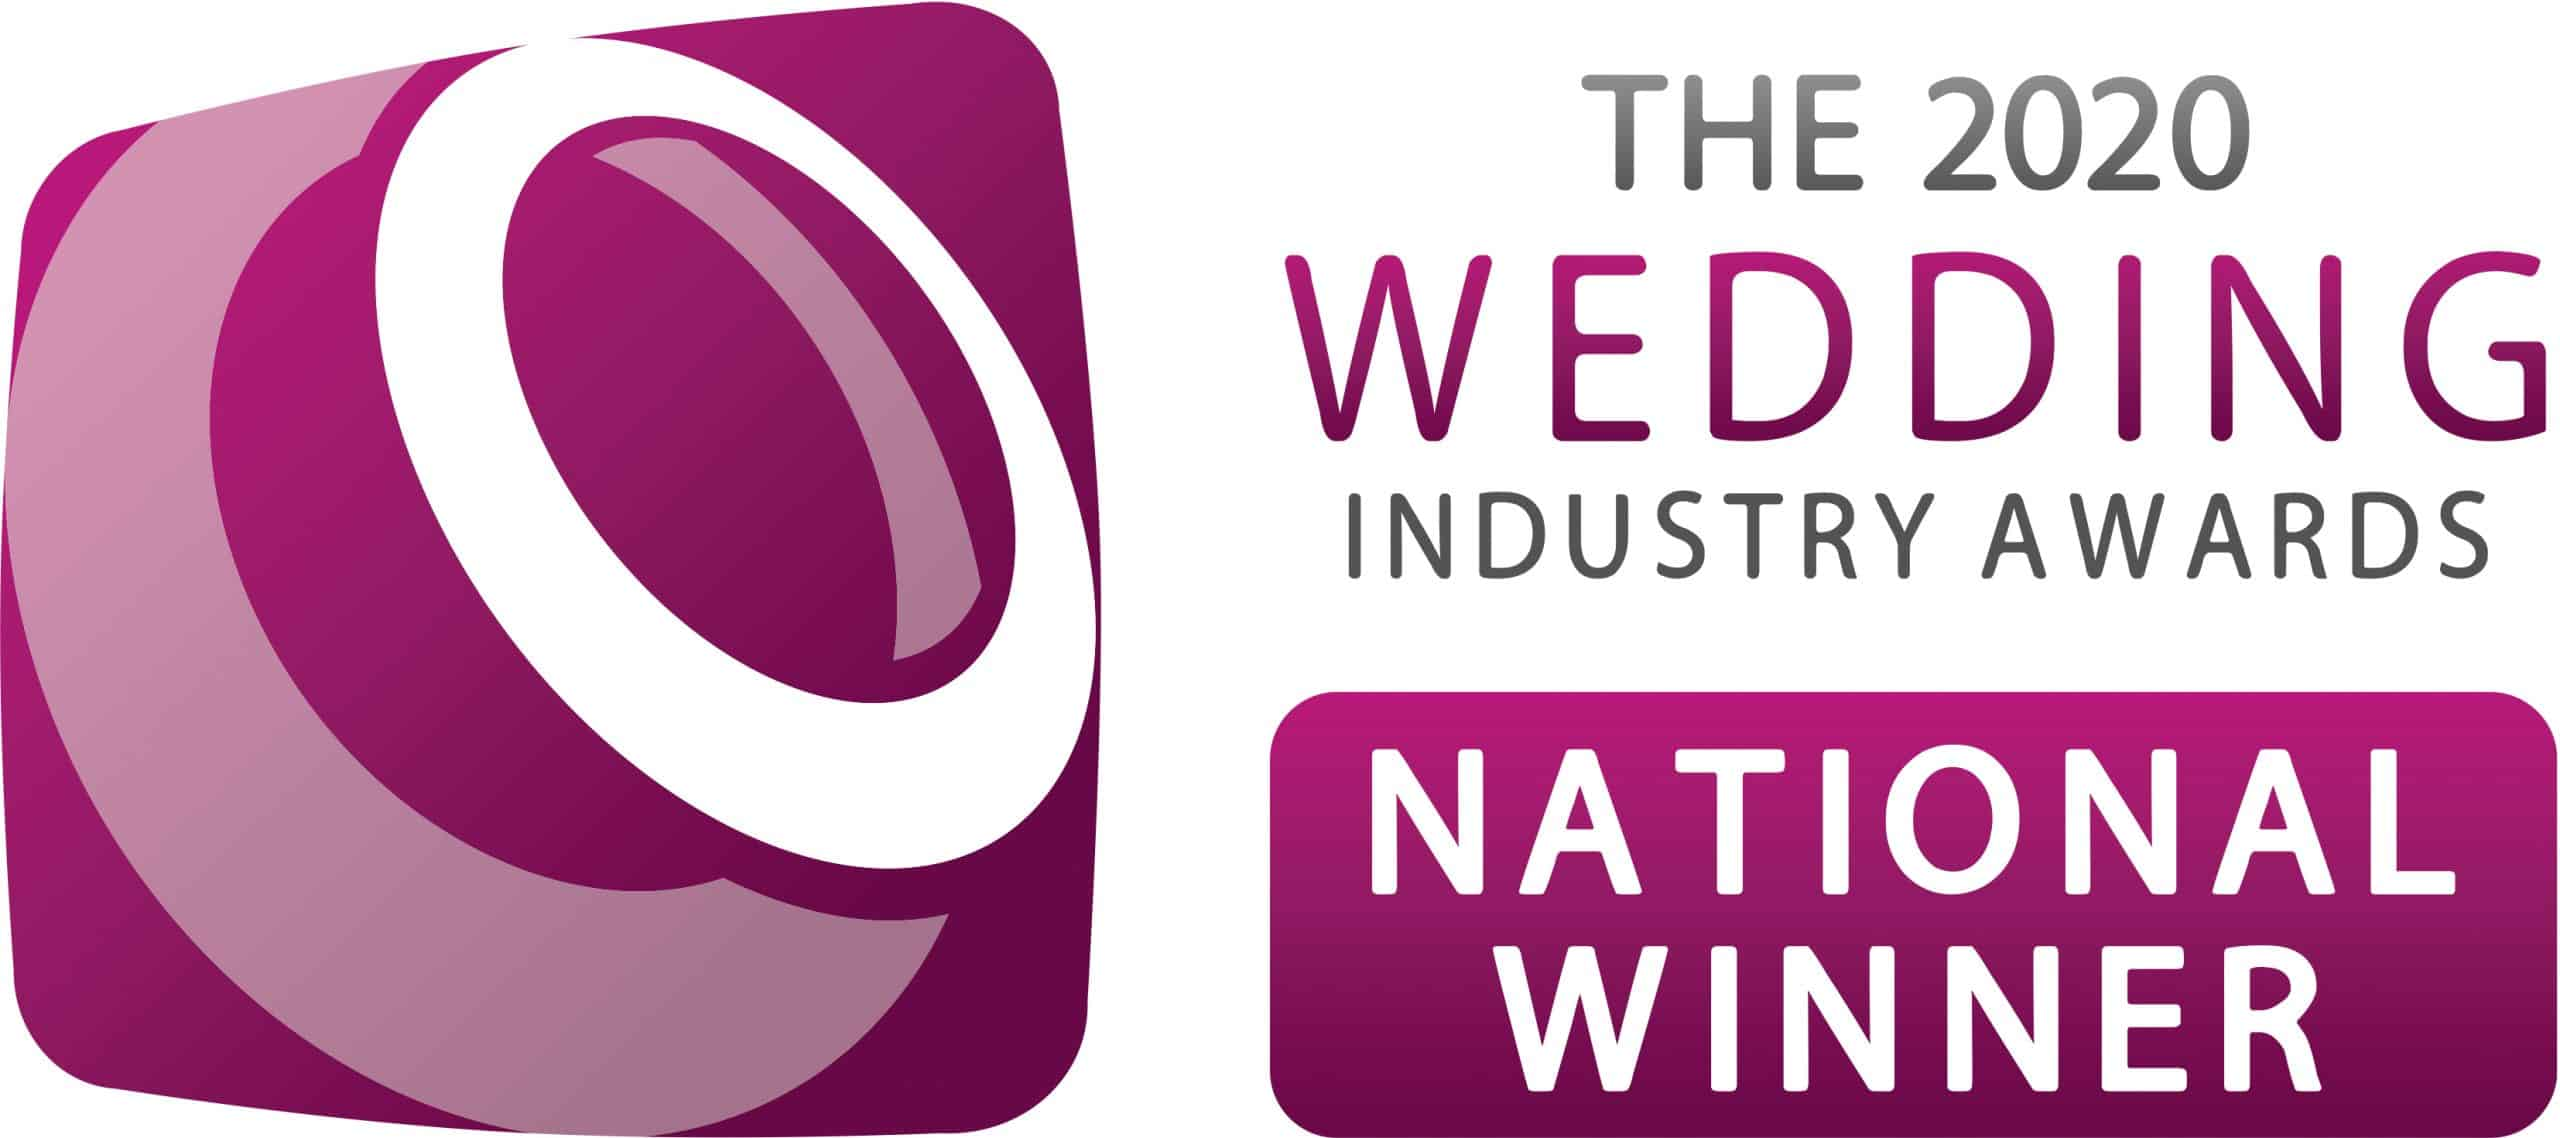 The 2020 Wedding Industry Awards National Winner